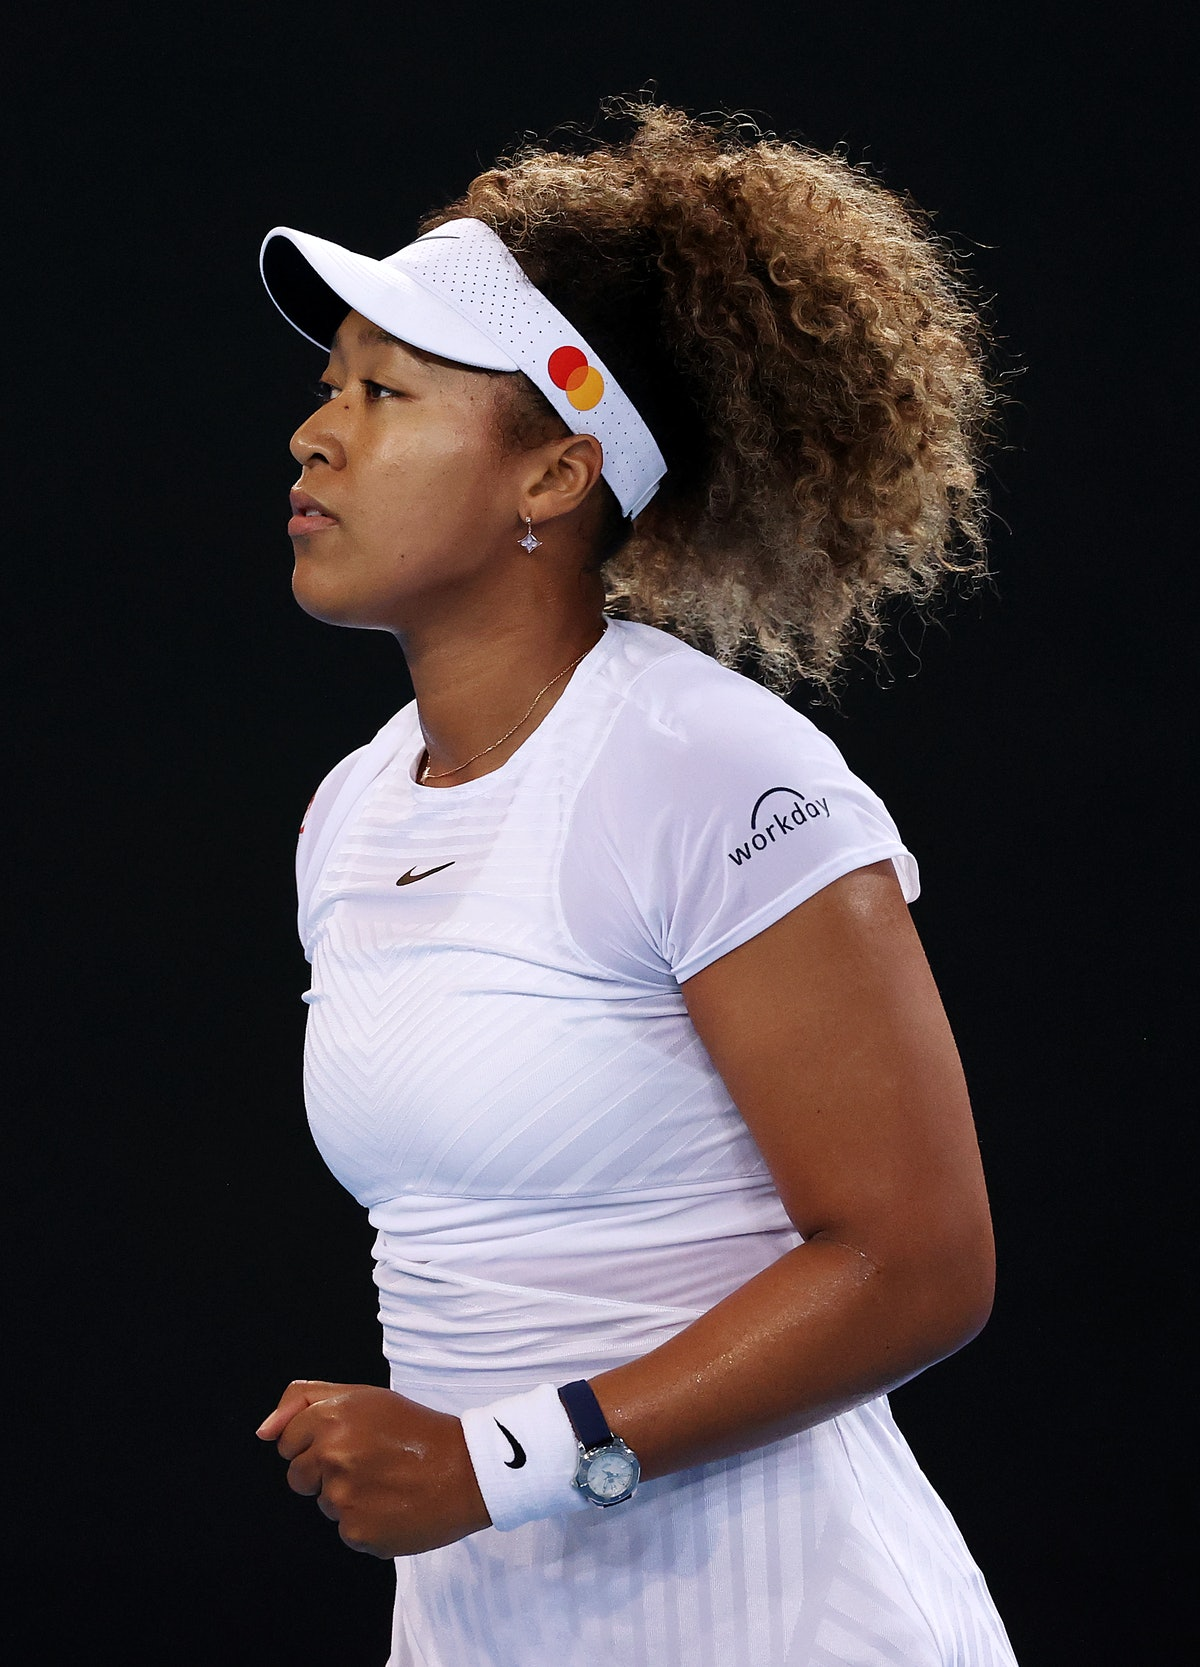 Naomi Osaka of Japan celebrates after winning a point in her Women's quarterfinals match against Iri...